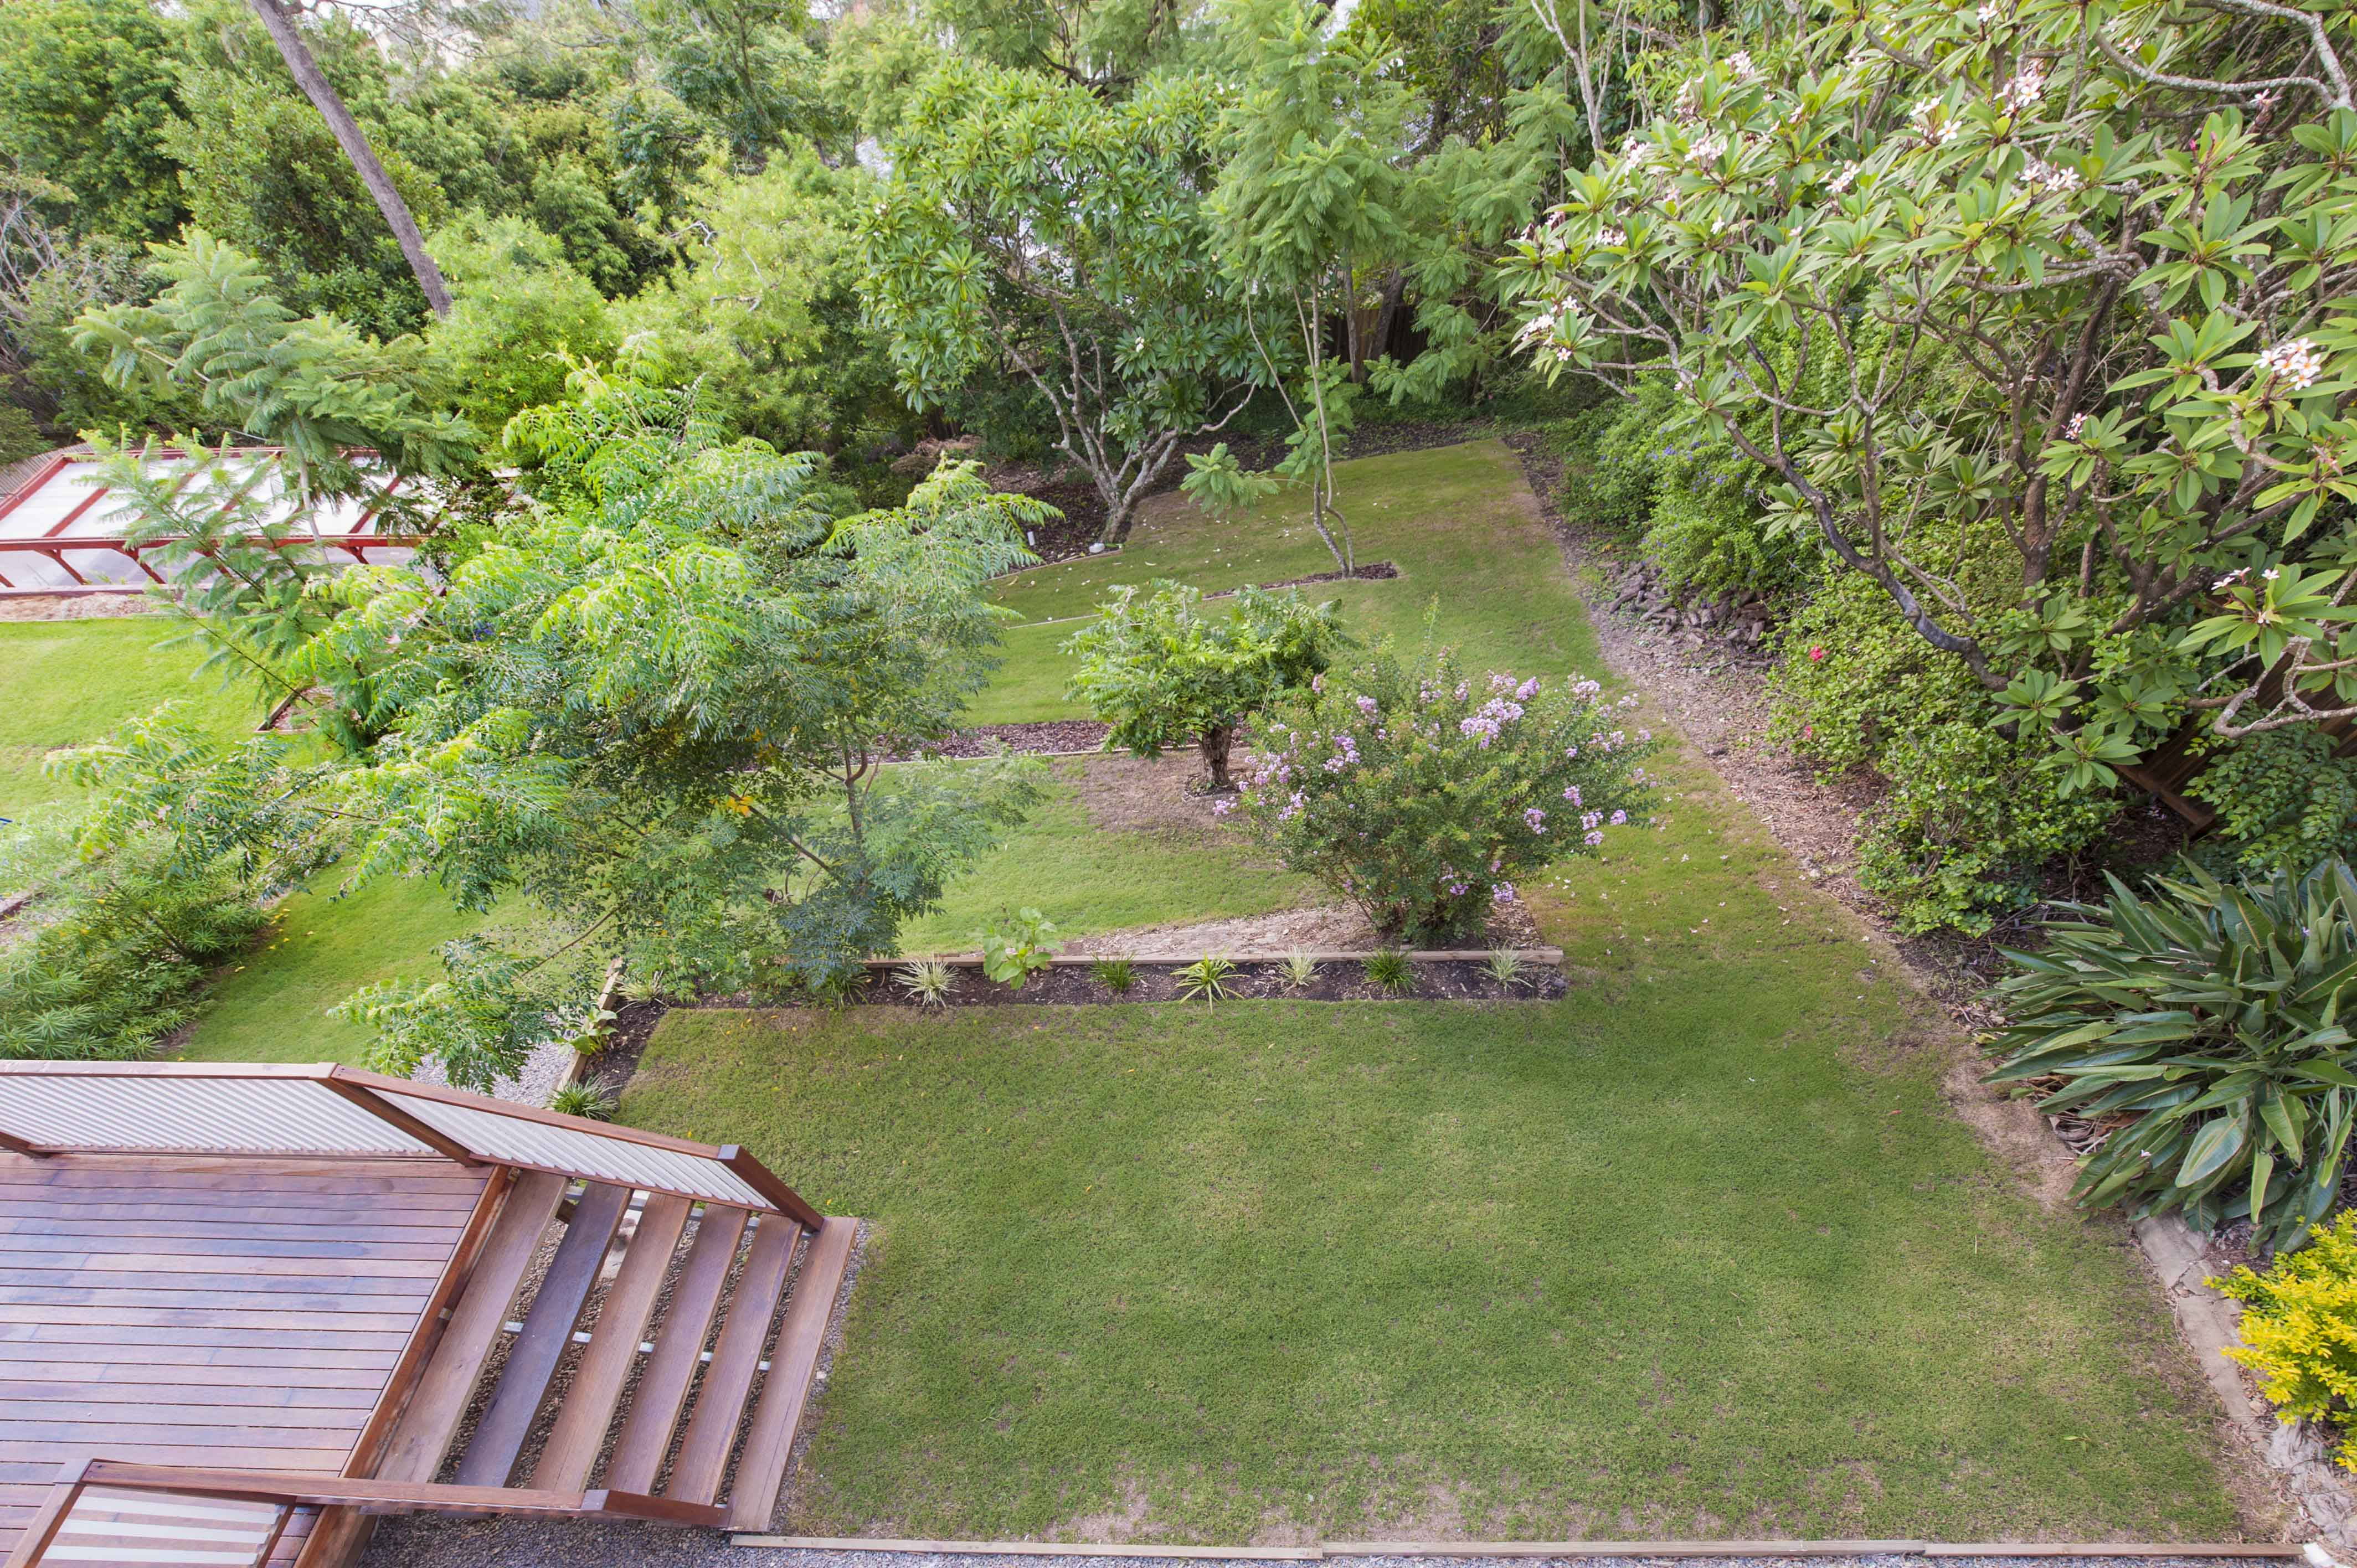 Downwards view of green backyard